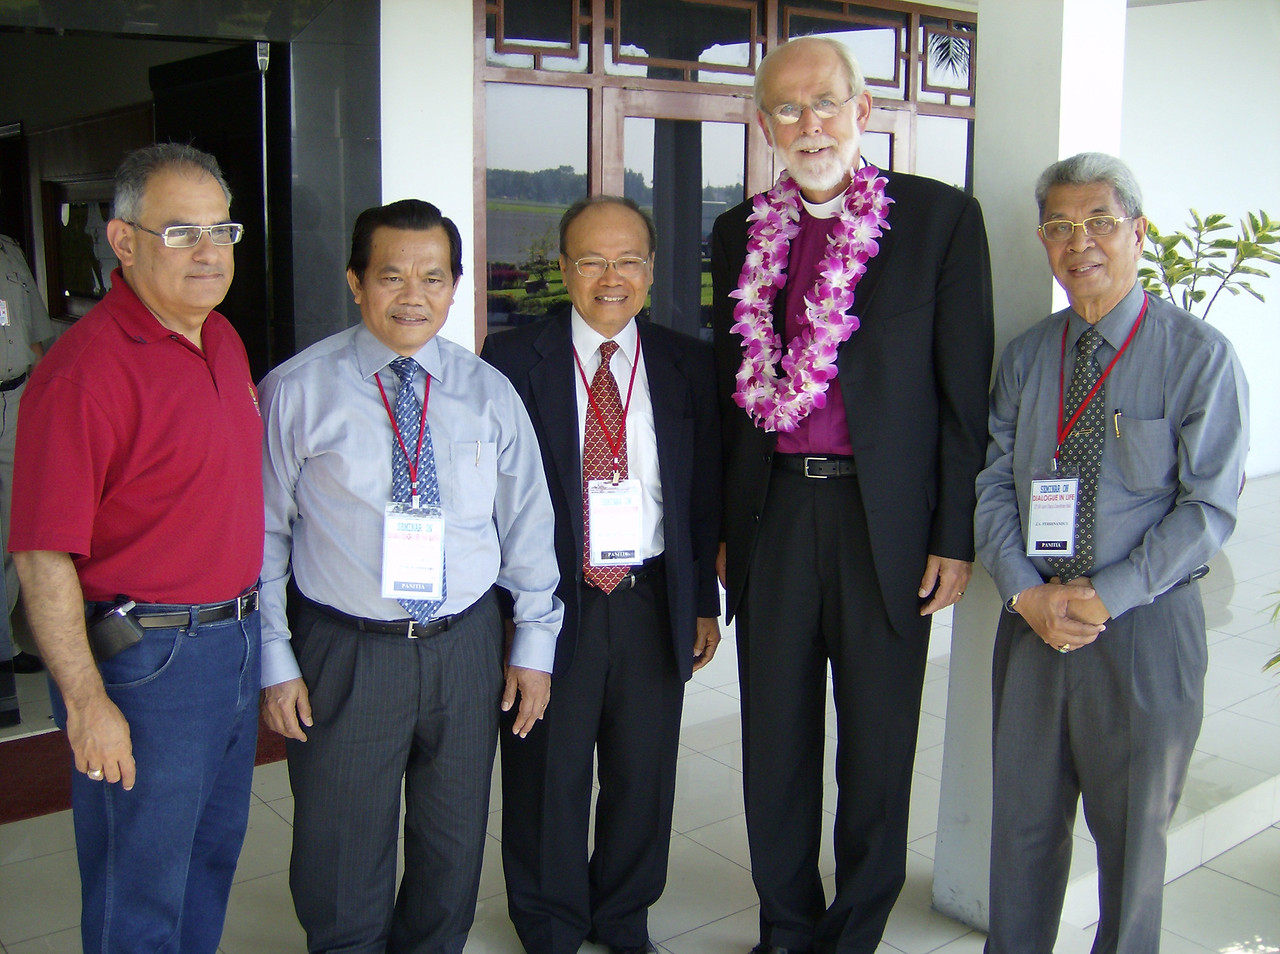 The Rev. Mark S. Hanson (2nd from right), ELCA presiding bishop and LWF  president, and the Rev. Rafael Malpica-Padilla (left), executive  director, ELCA Global Mission, were welcomed June 30 at the Medan  airport.